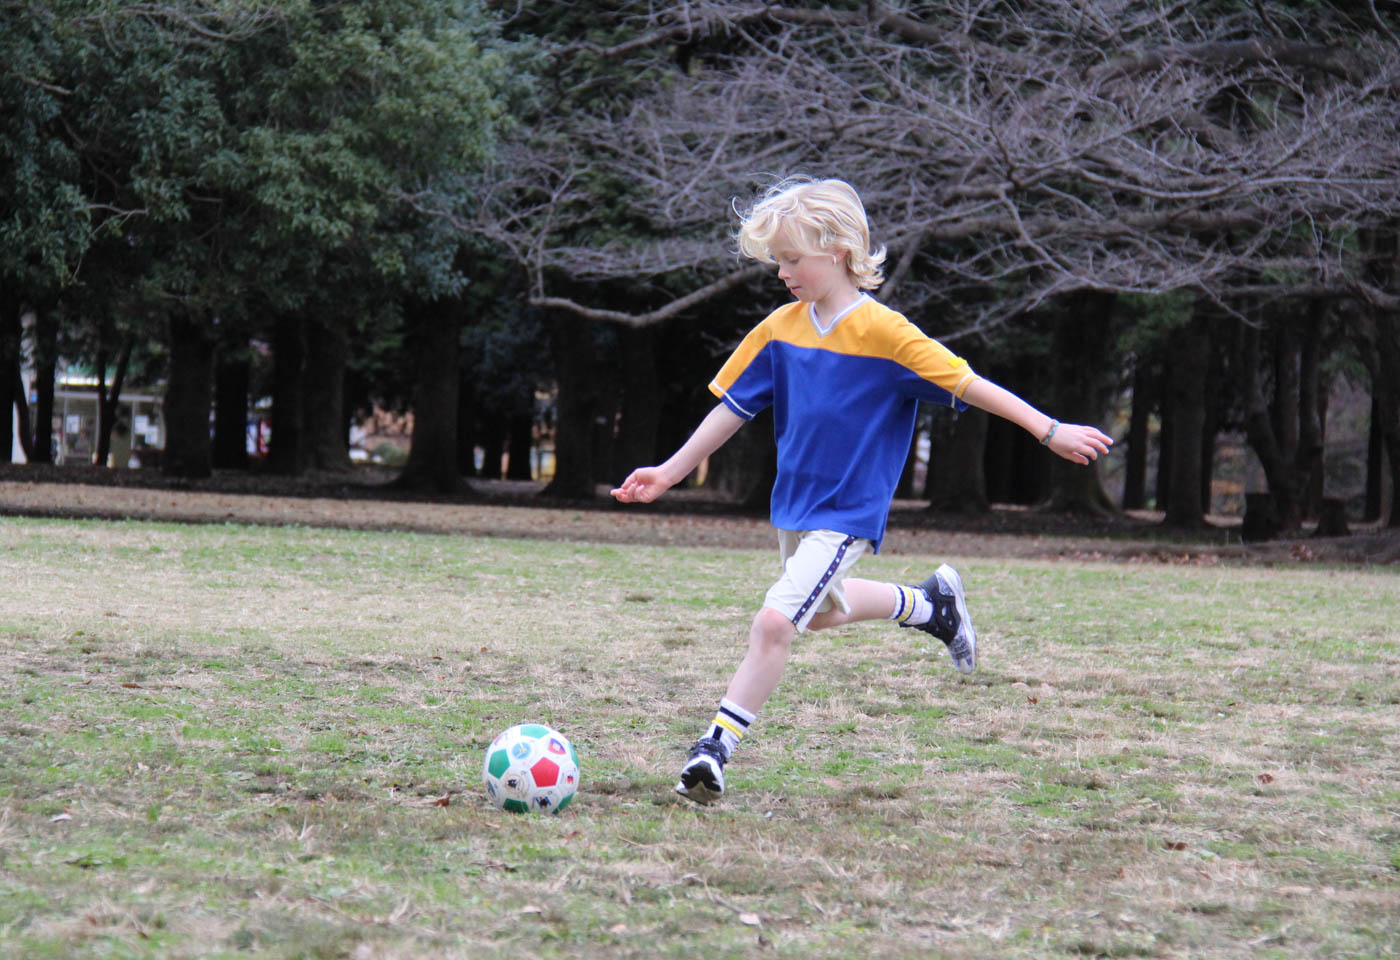 Kid playing soccer taken with Canon EOS 1300D DSLR camera